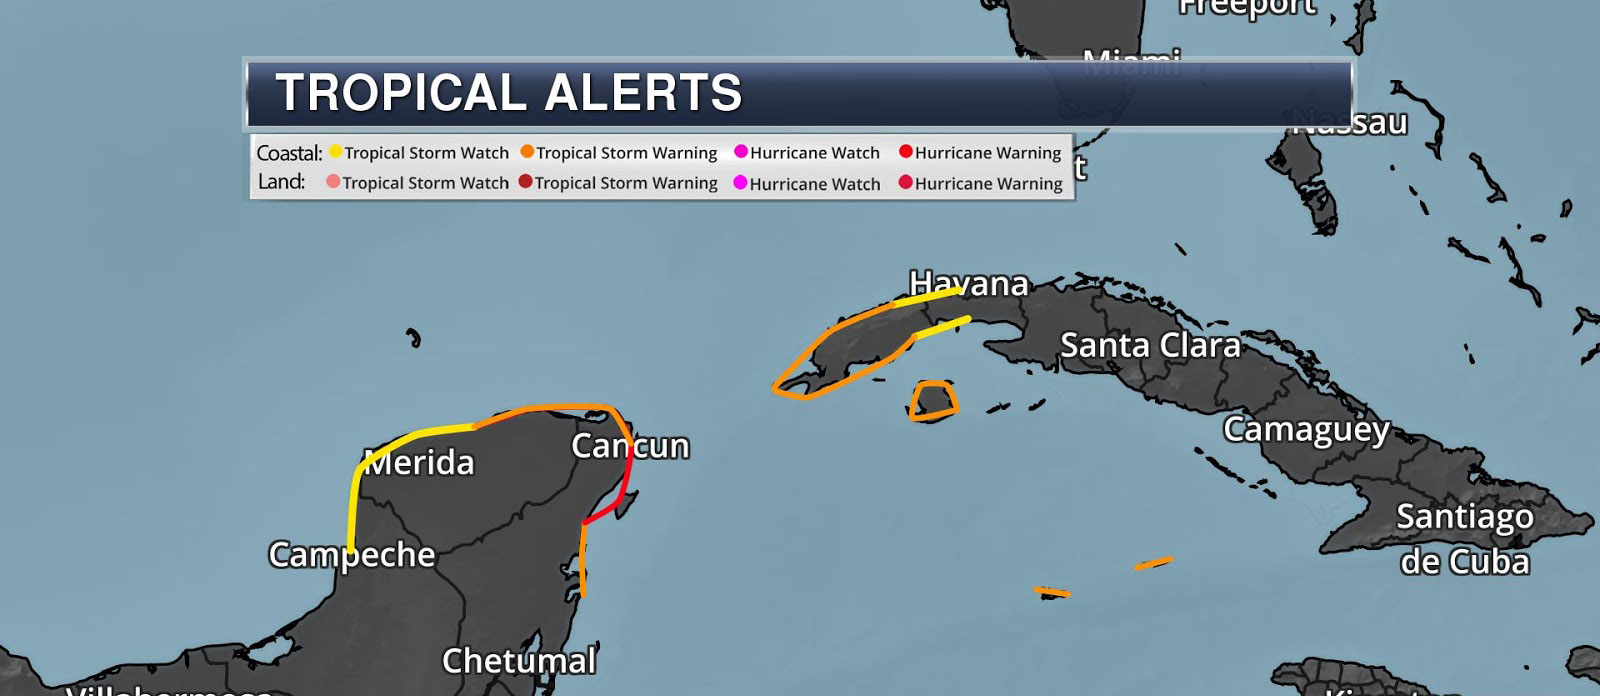 tropical-alerts-10-radar